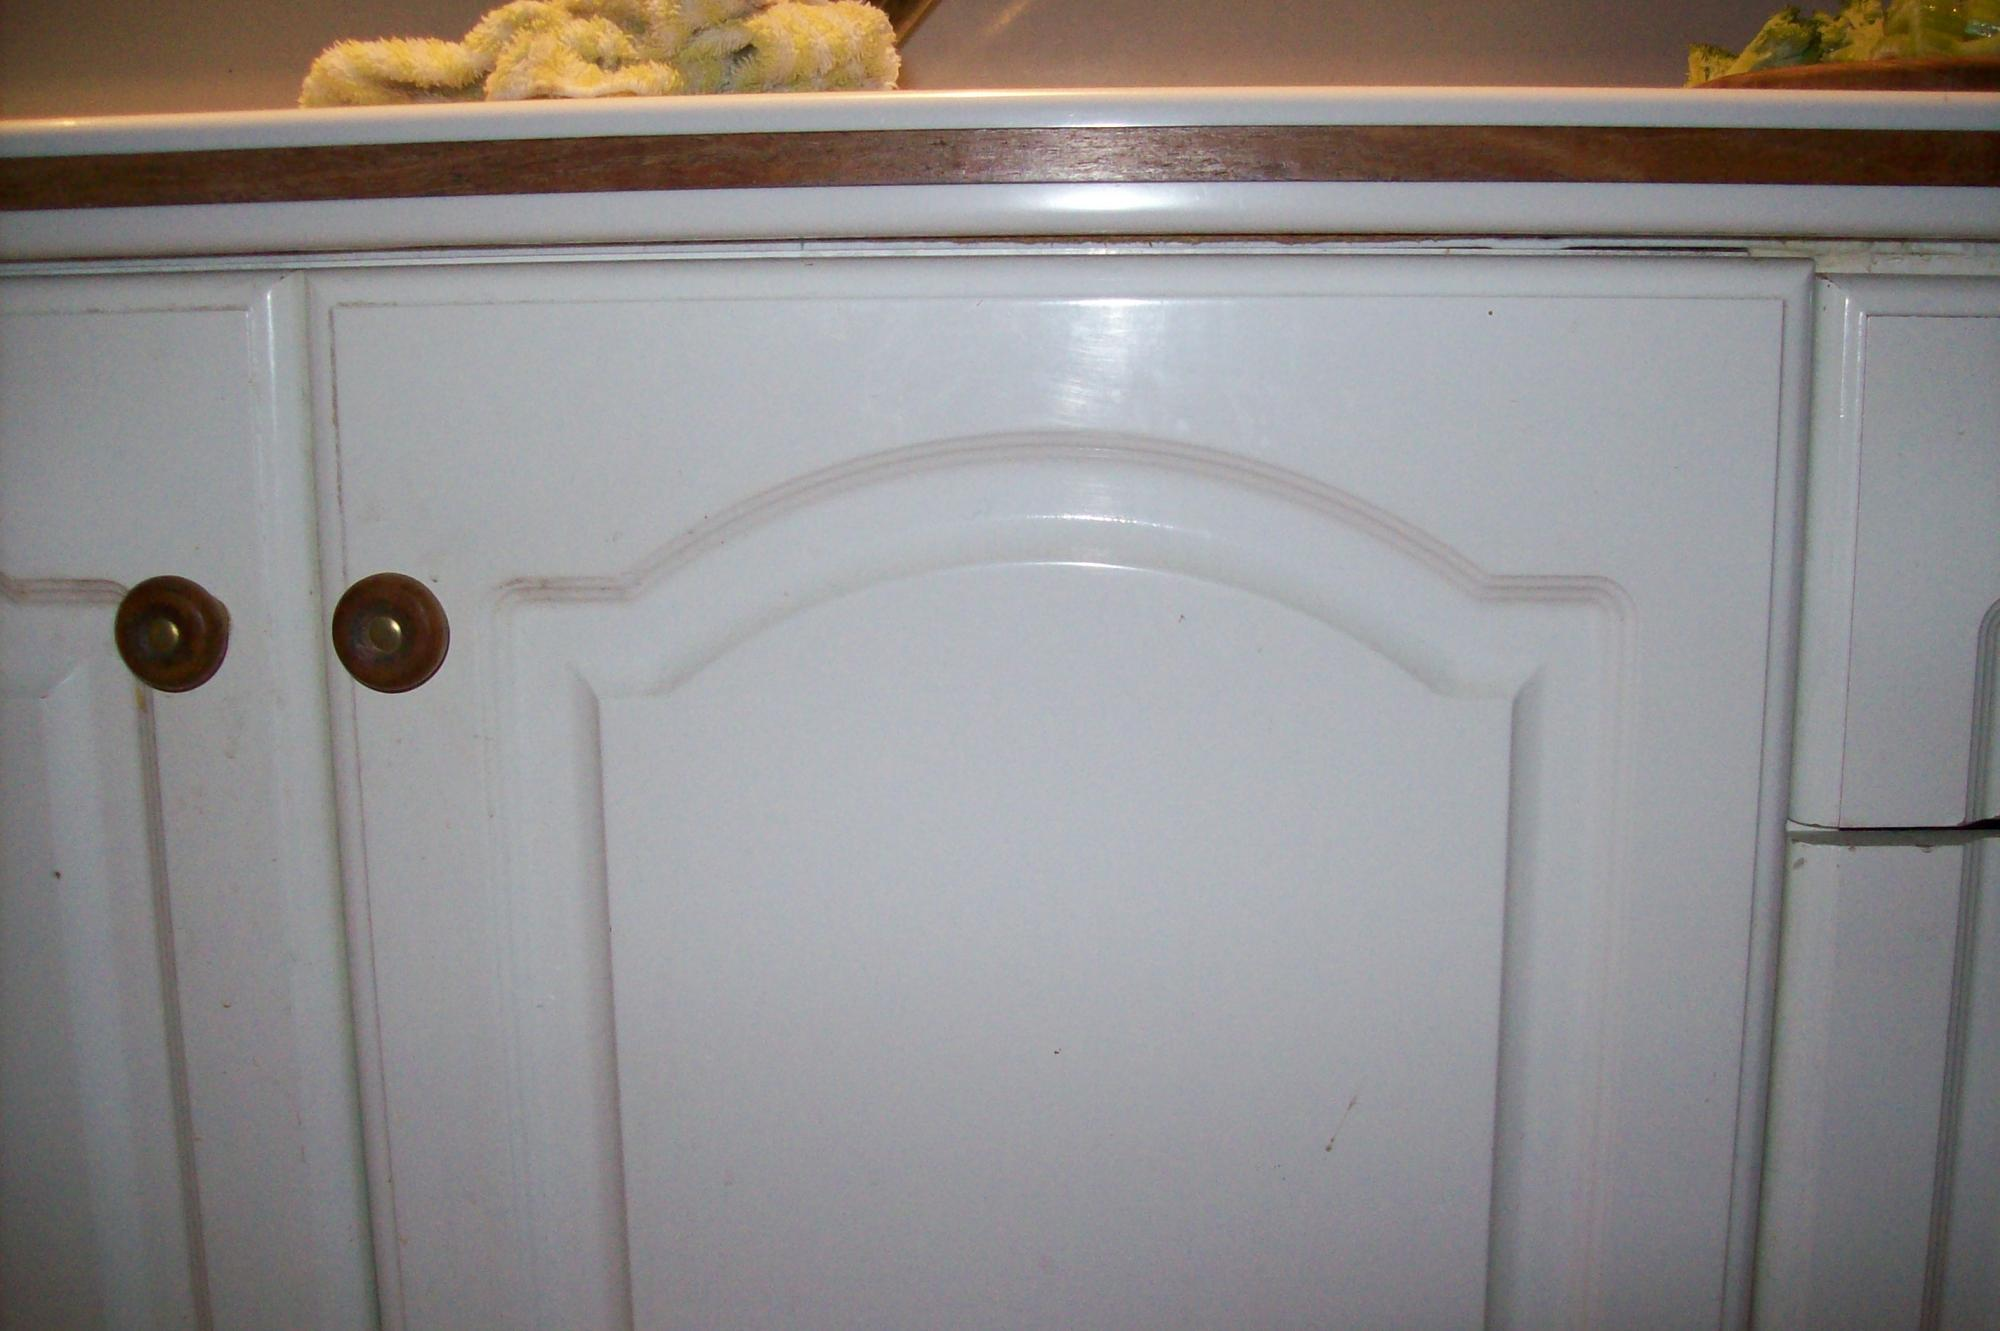 Pattern routing to match cabinet door profile - Router Forums